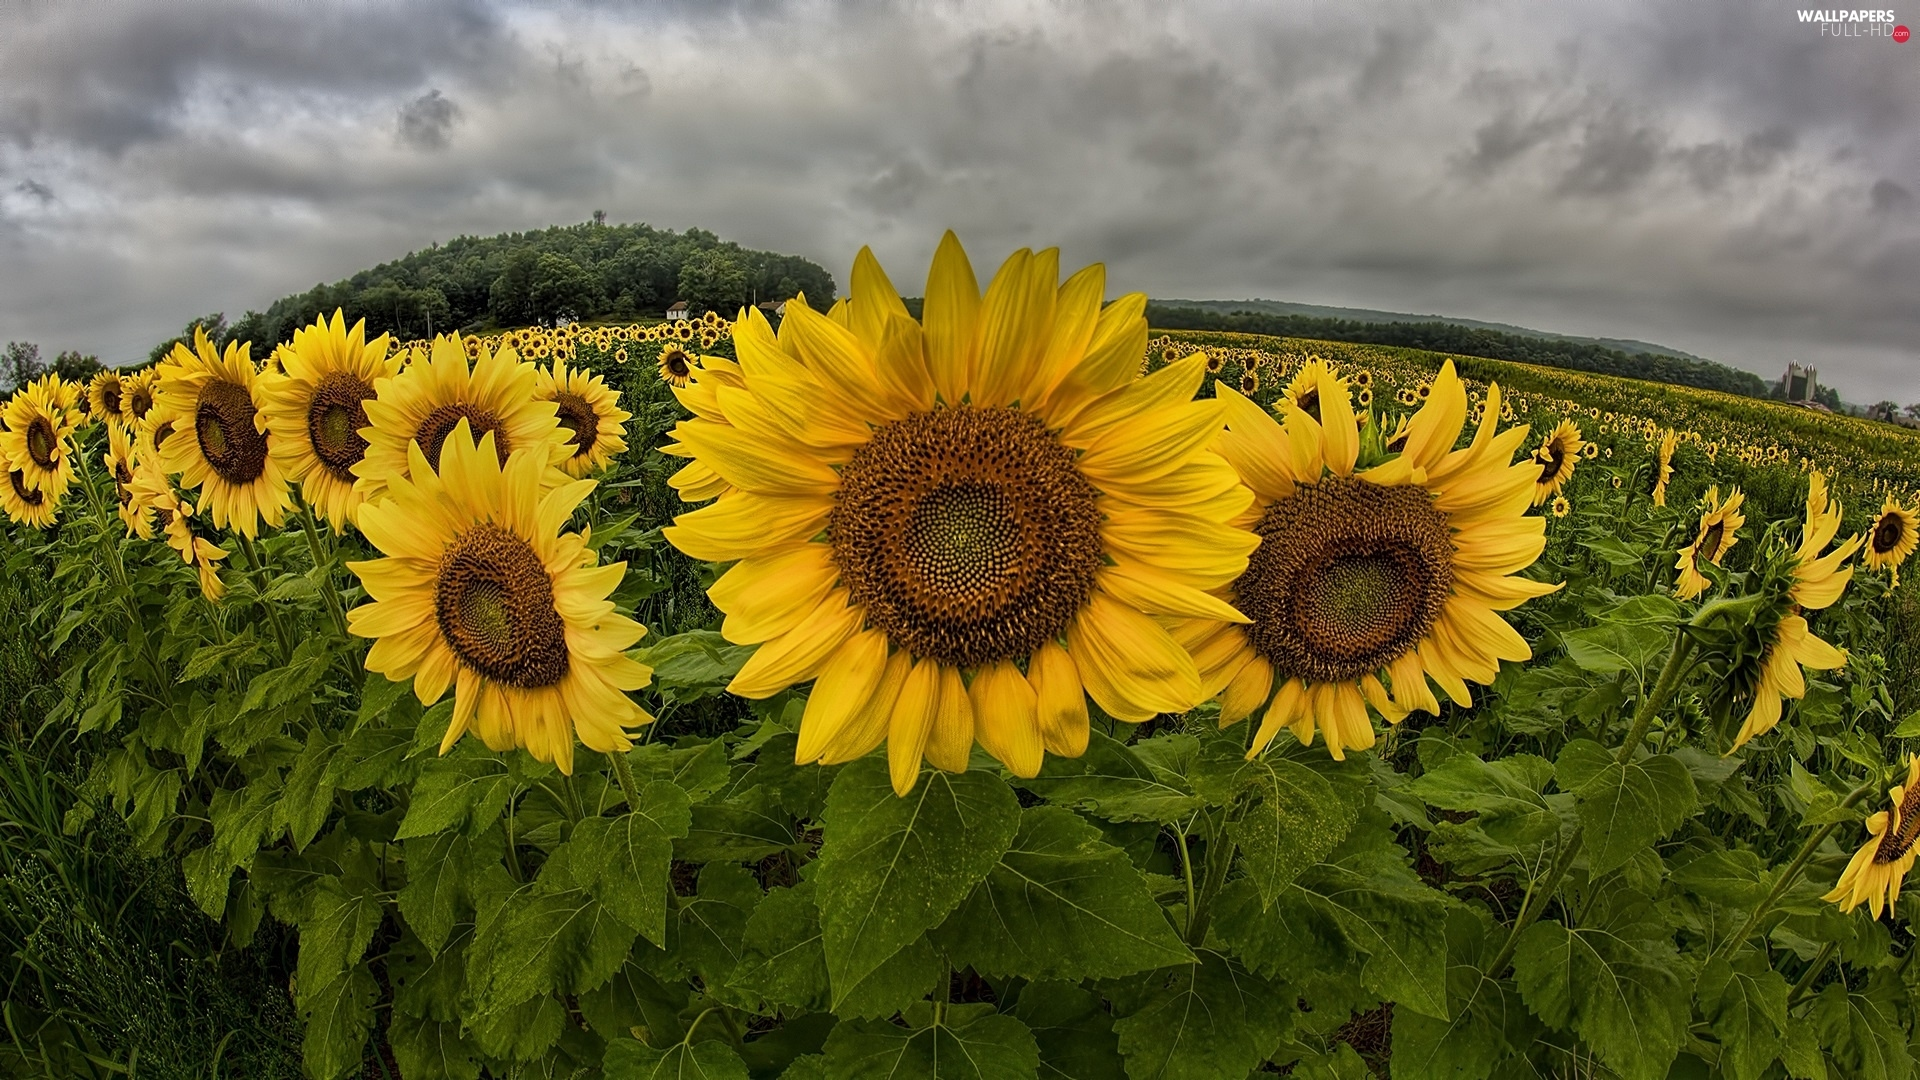 panorama, clouds, Field, sunflowers